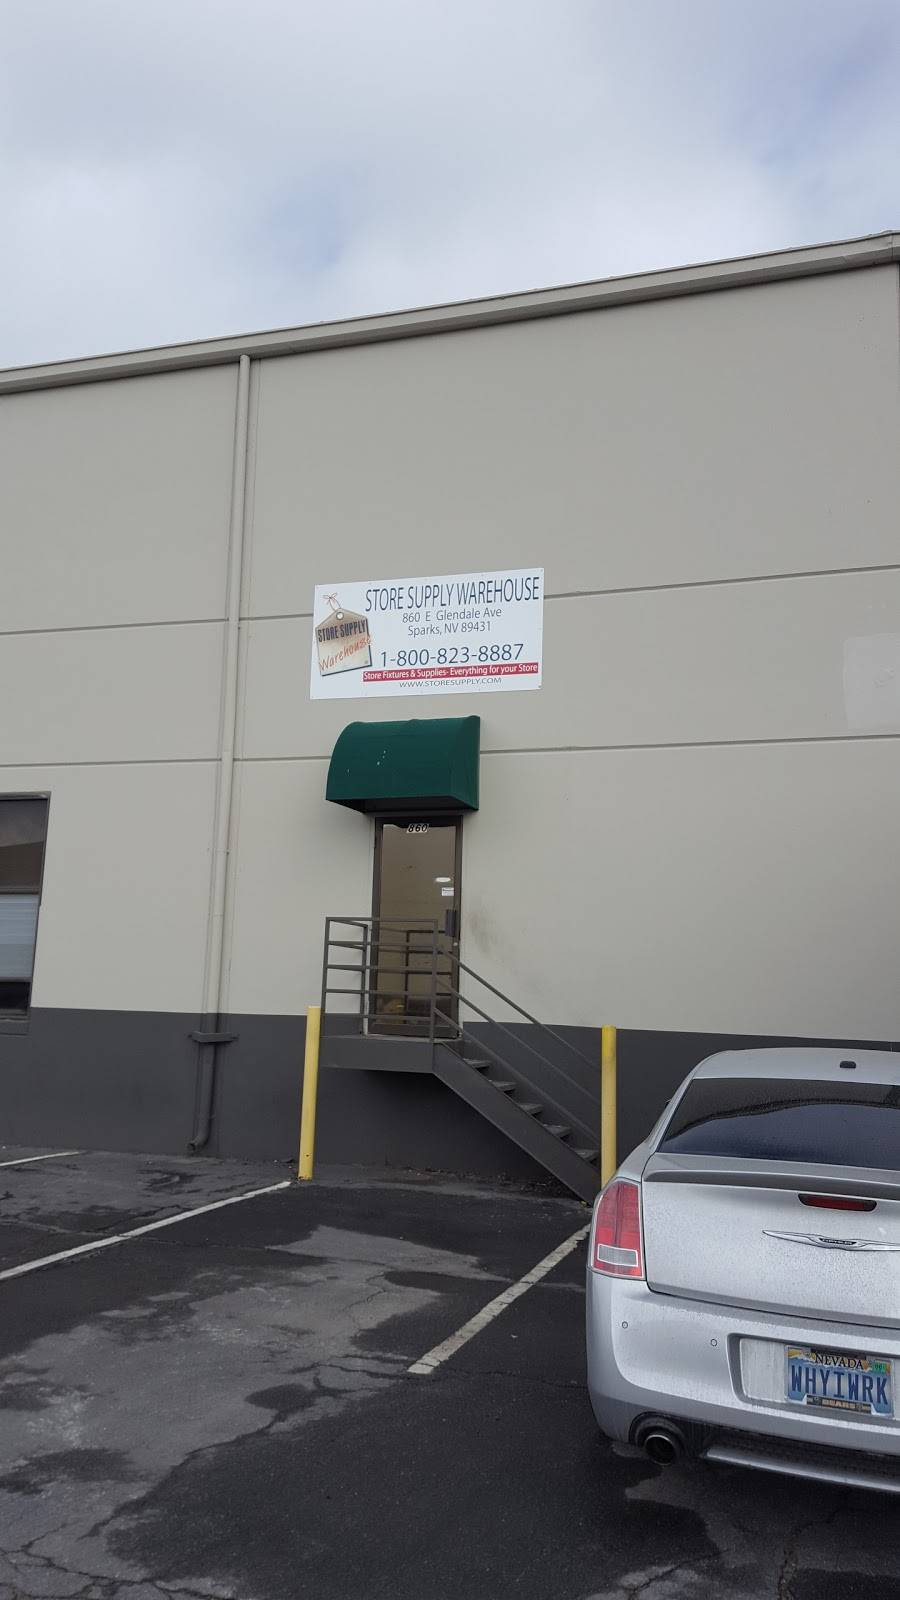 Store Supply Warehouse, LLC - hardware store  | Photo 1 of 2 | Address: 860 E Glendale Ave, Sparks, NV 89431, USA | Phone: (775) 358-6765